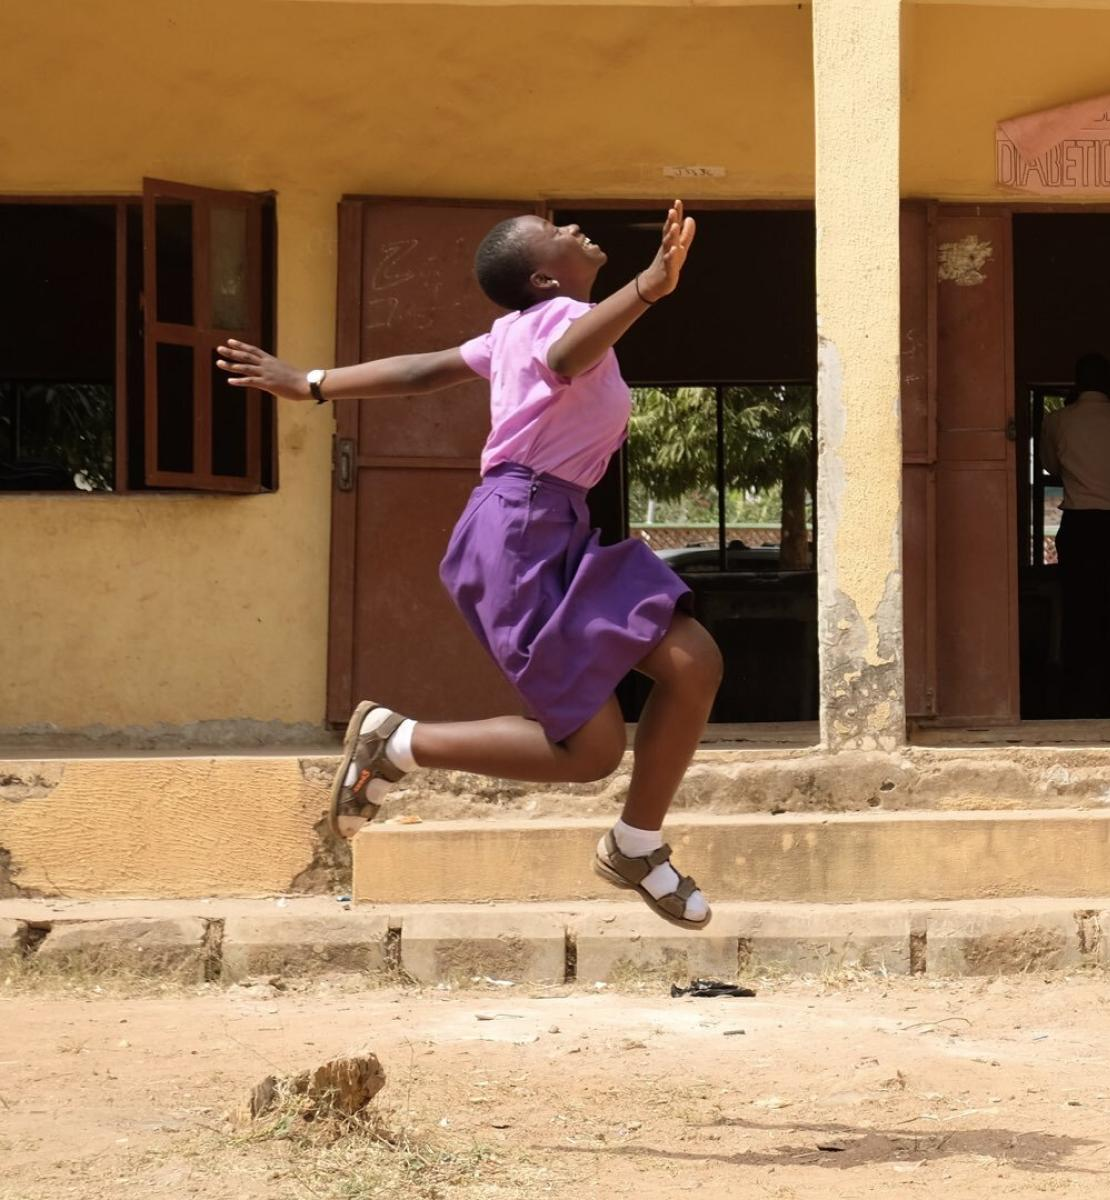 A young girl in a pink shirt and purple dress jumps near a school building.